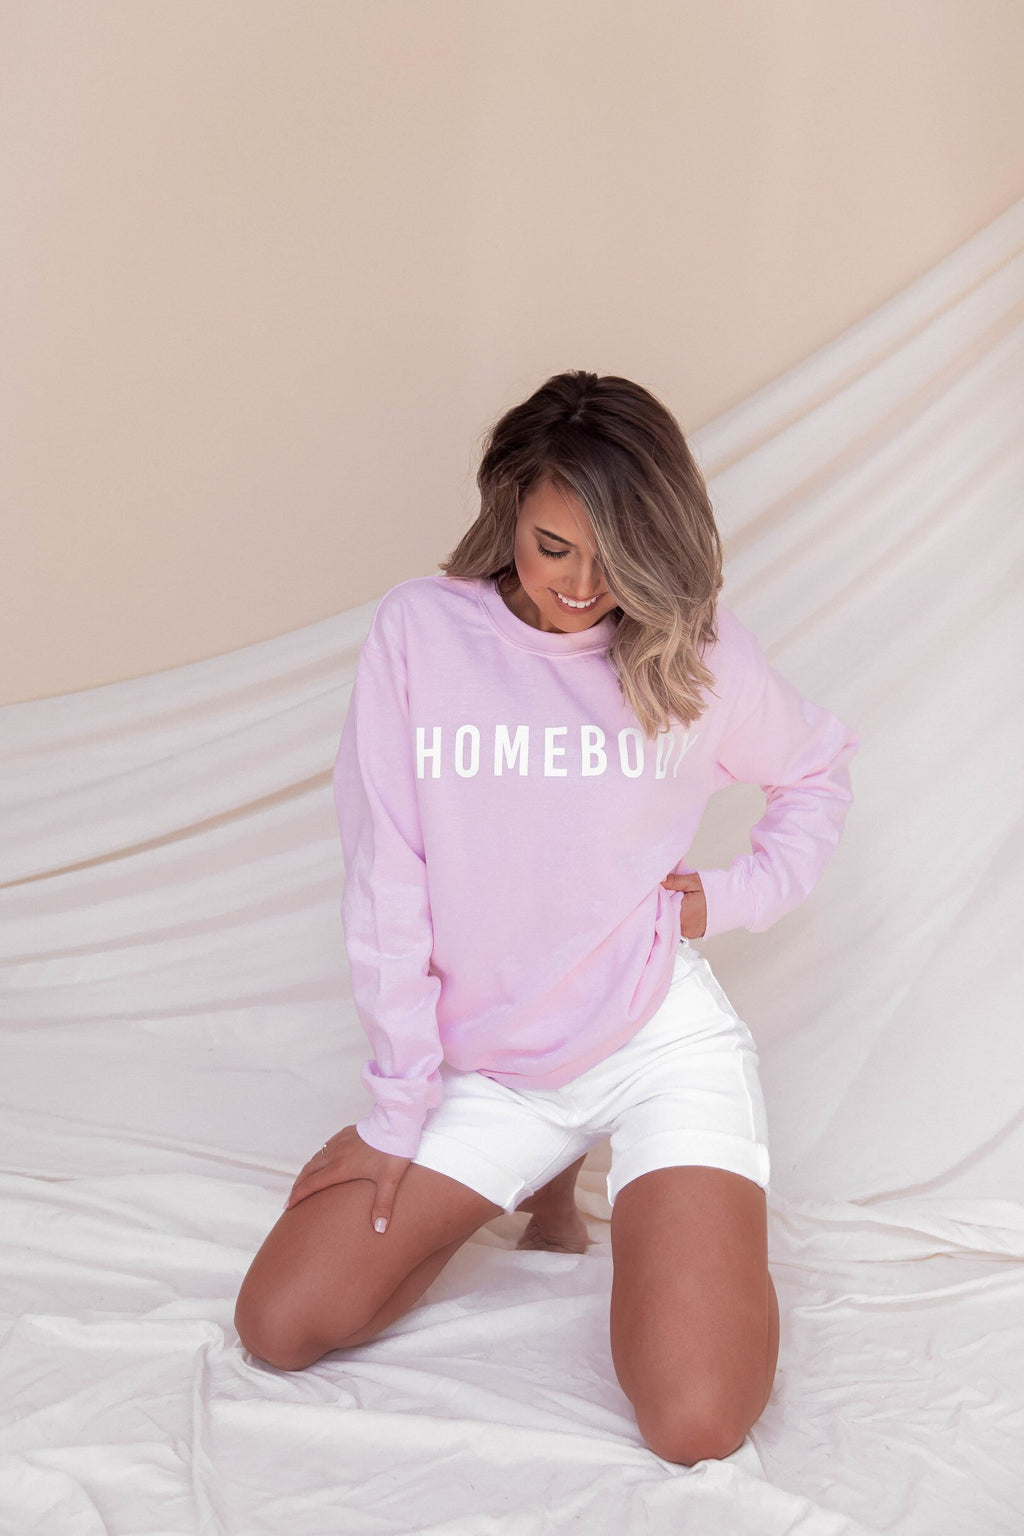 Homebody Sweatshirt- FINAL SALE